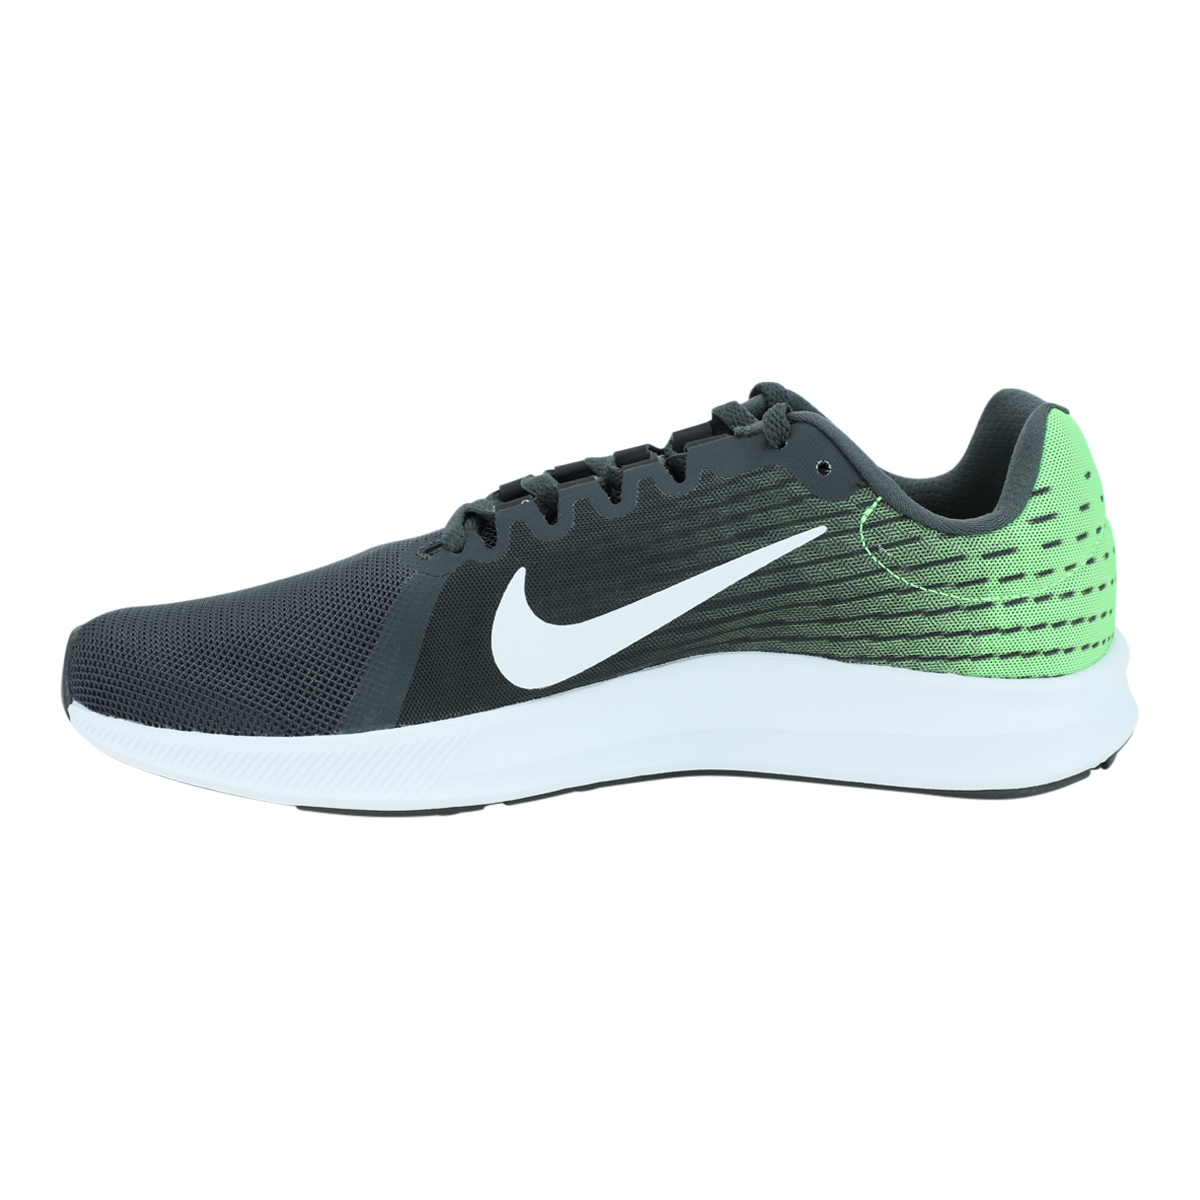 Nike-Men-039-s-Downshifter-8-Running-Shoes thumbnail 6